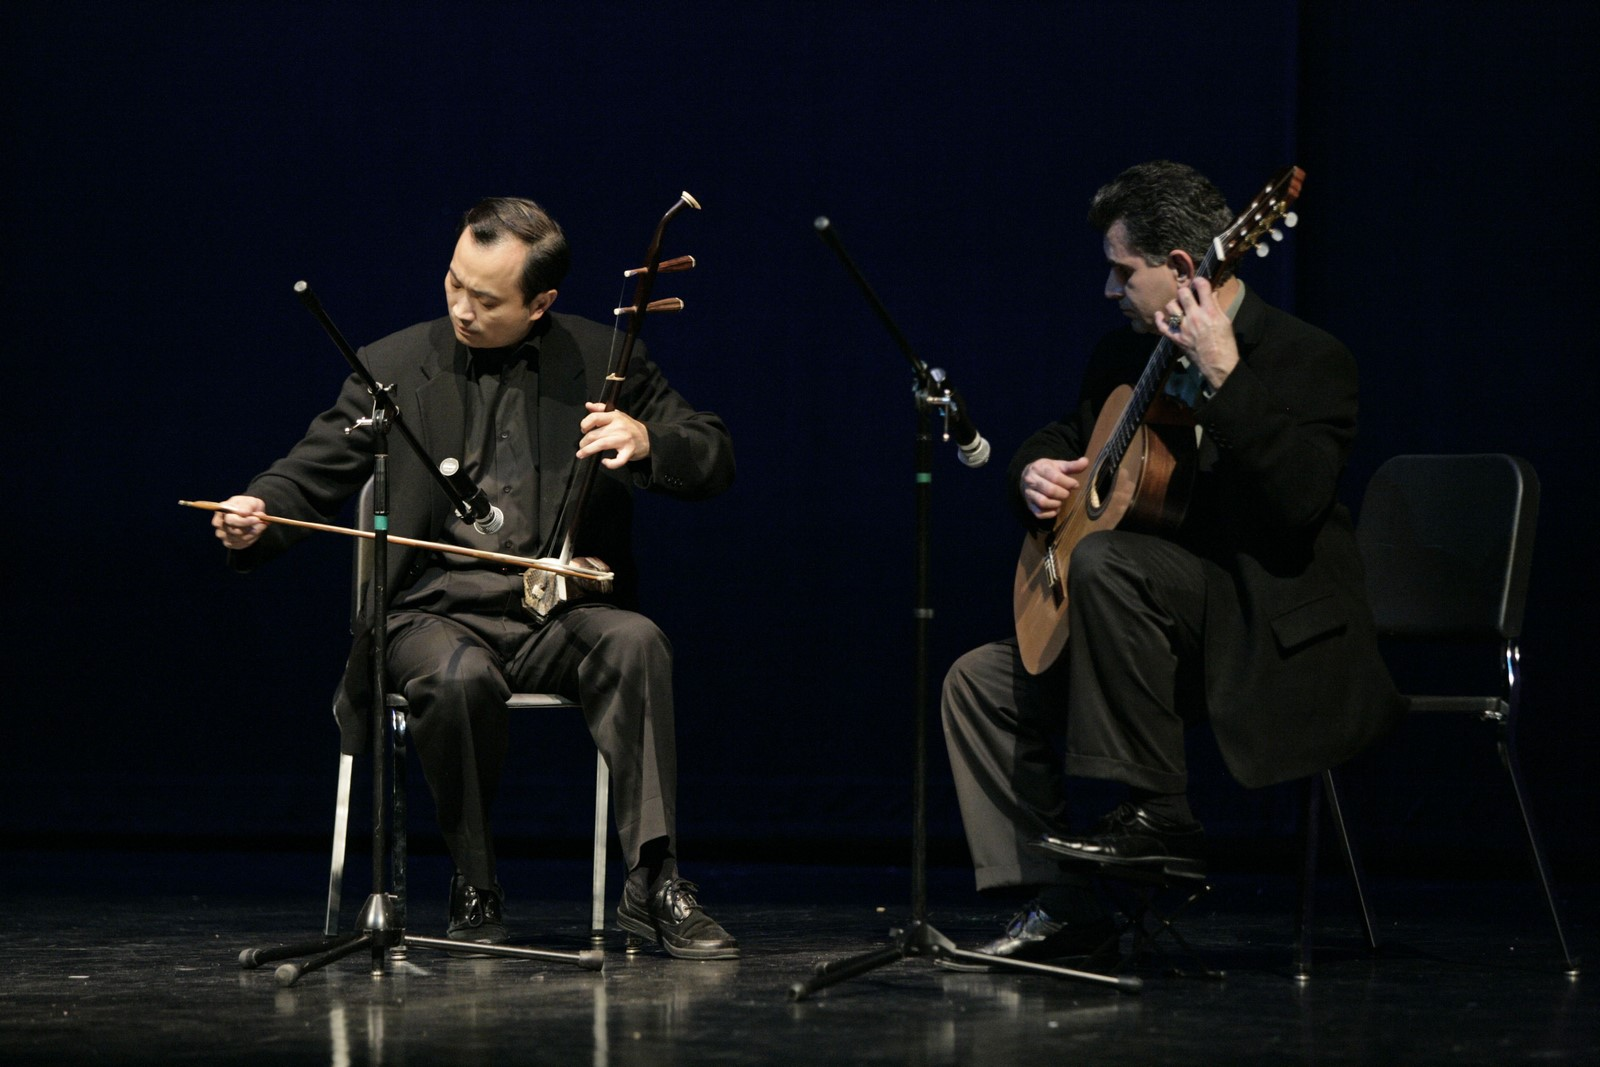 Dr. Wang on erhu and Carlos on guitar_1